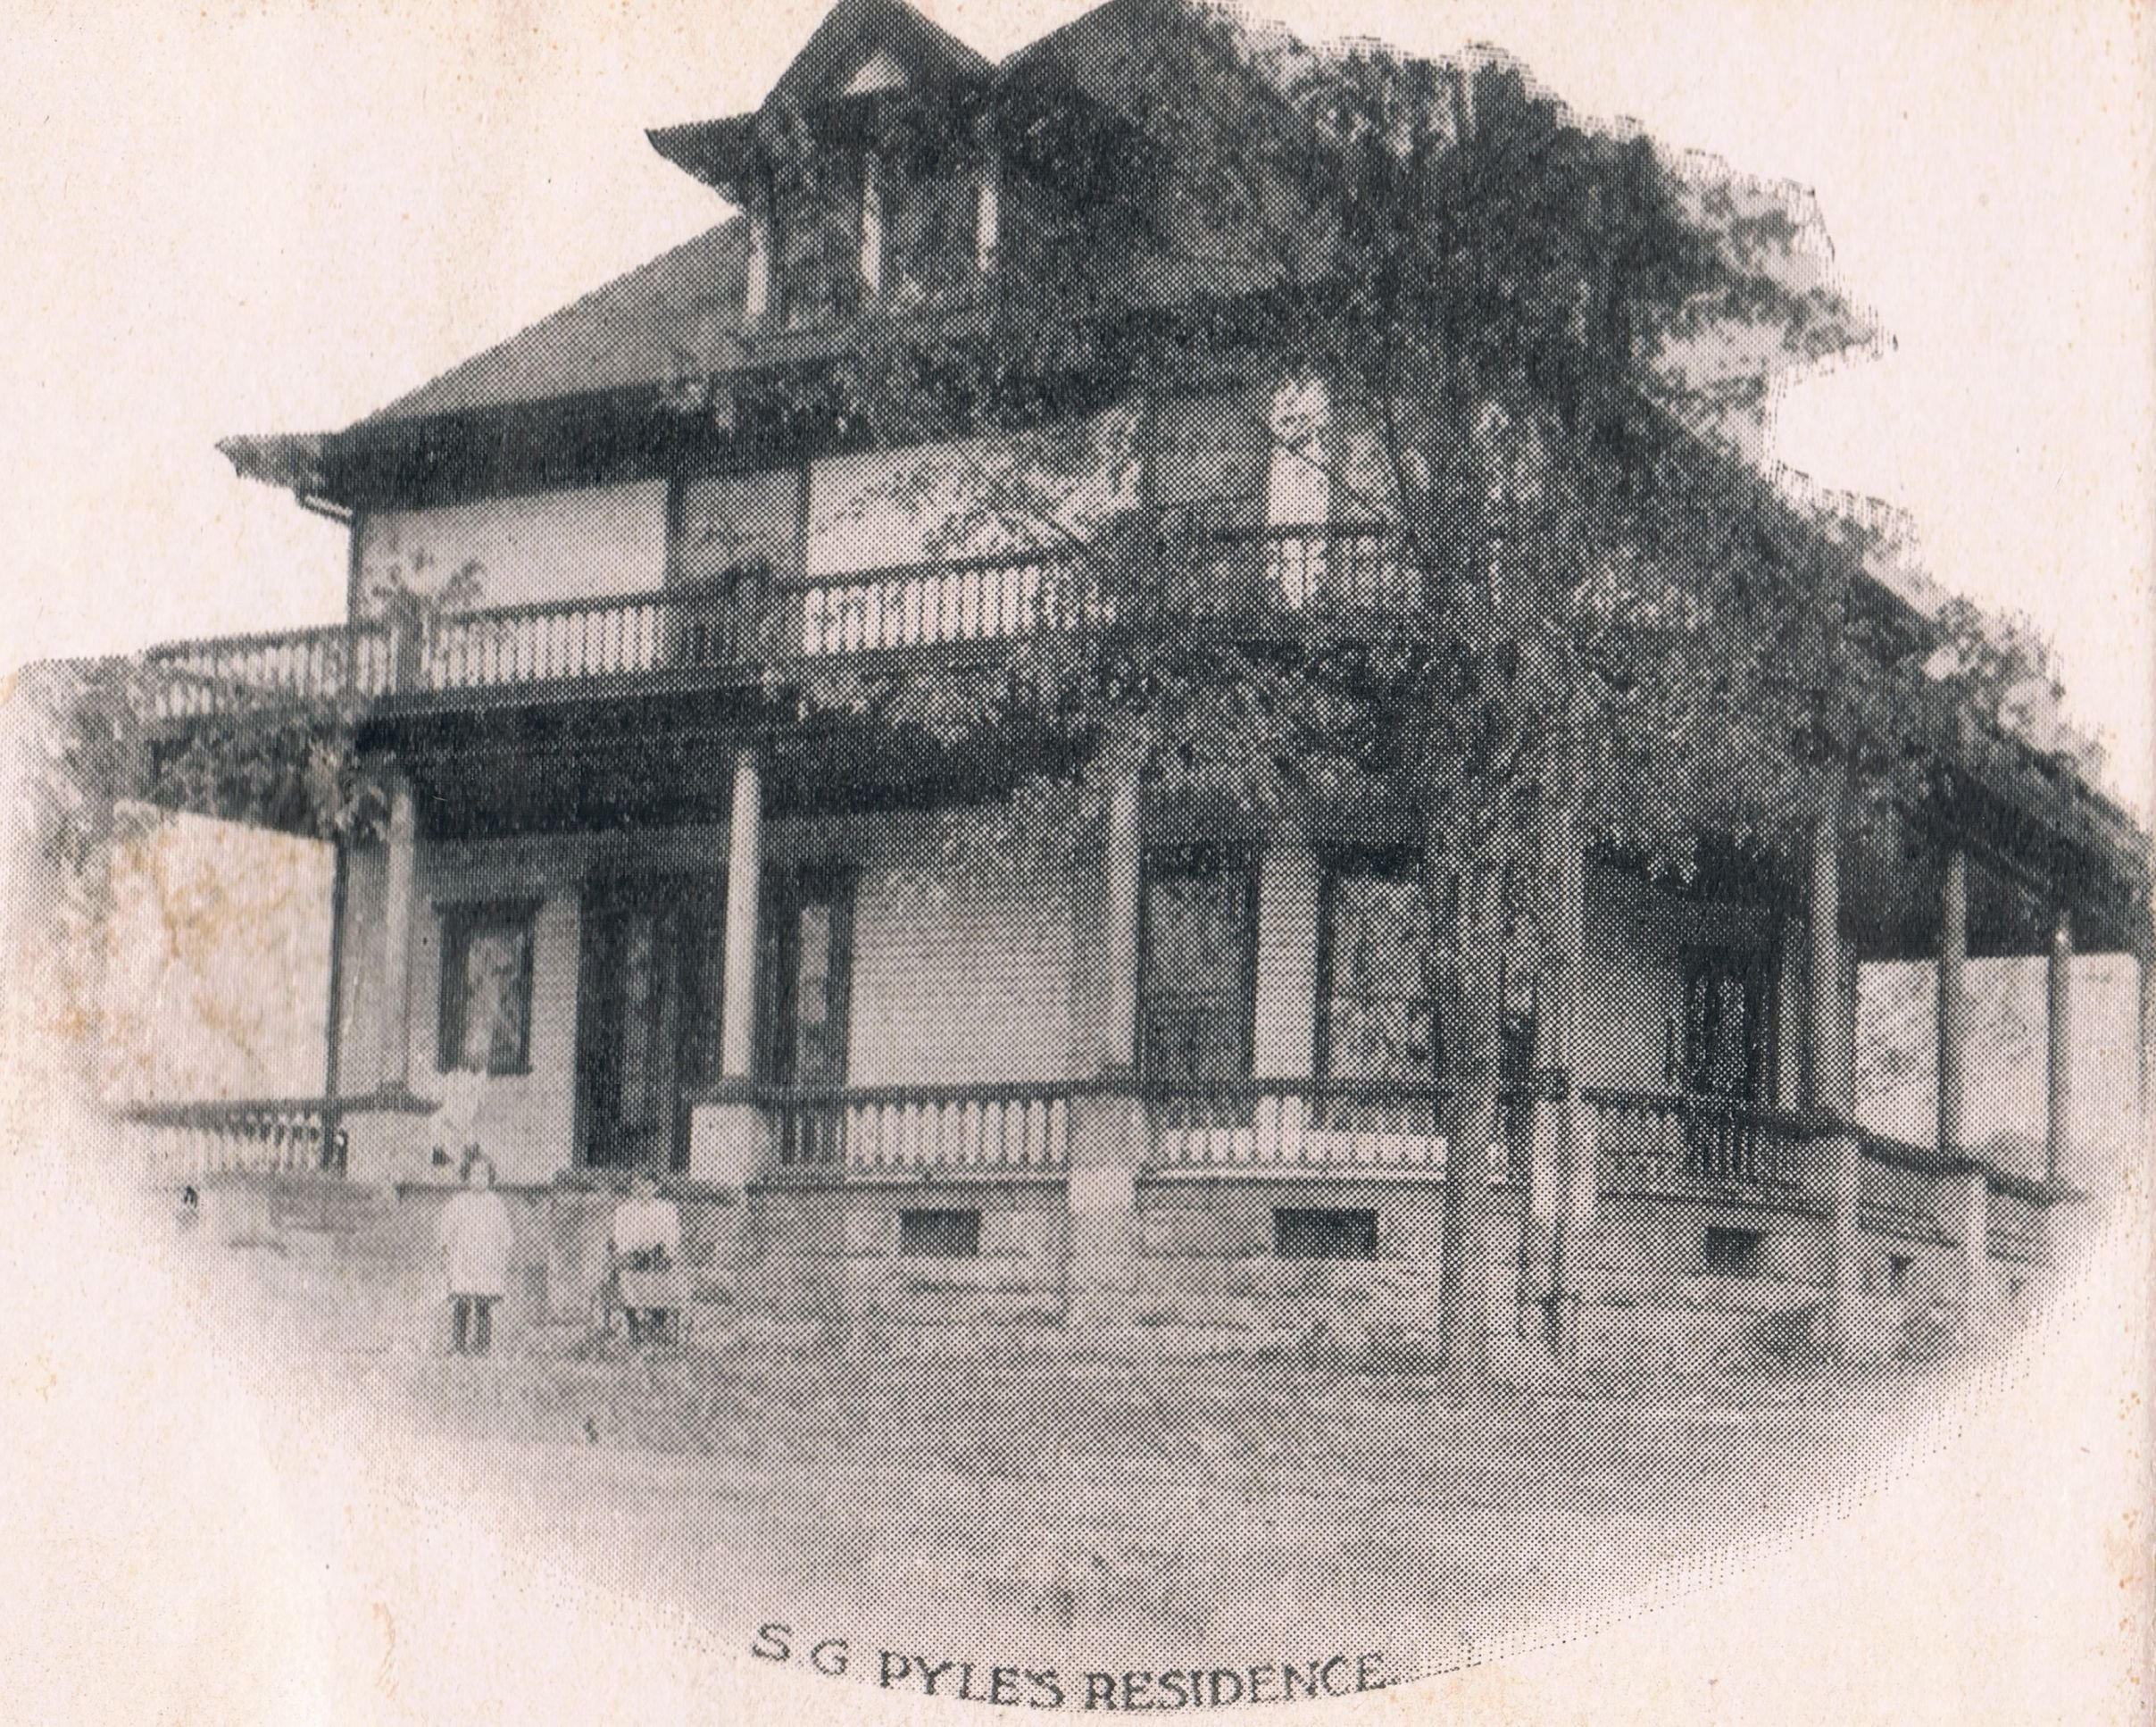 S.G. Pyle house in its heyday